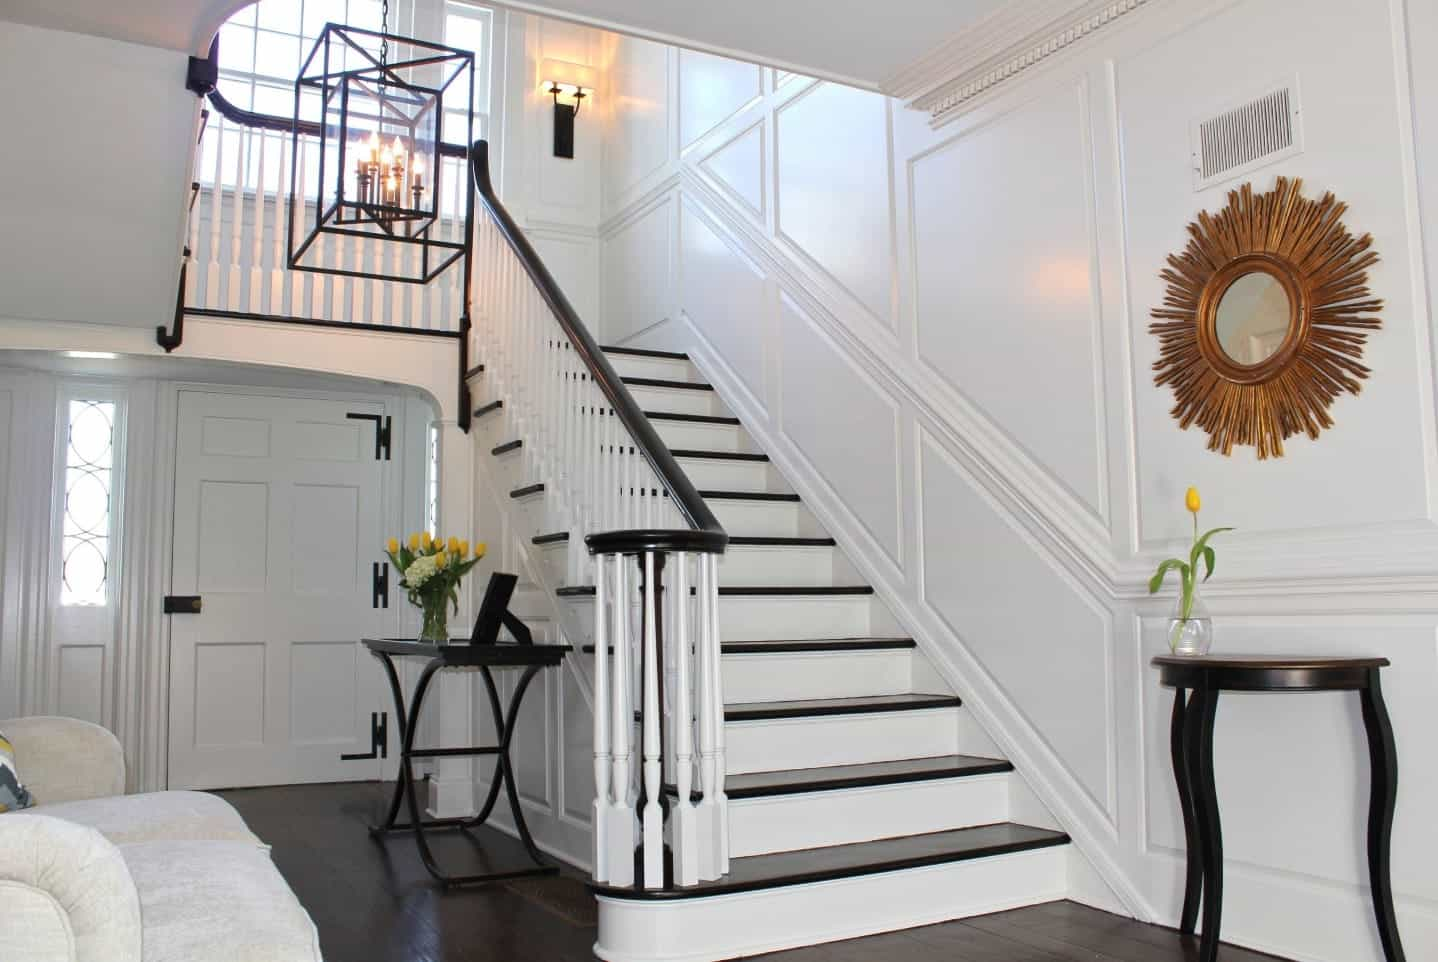 Traditional entryway showcases a staircase fixed to the white wall with full wainscoting and illuminated by a sconce and caged pendant light. It is decorated with a sunburst mirror mounted above the dark wood console table.